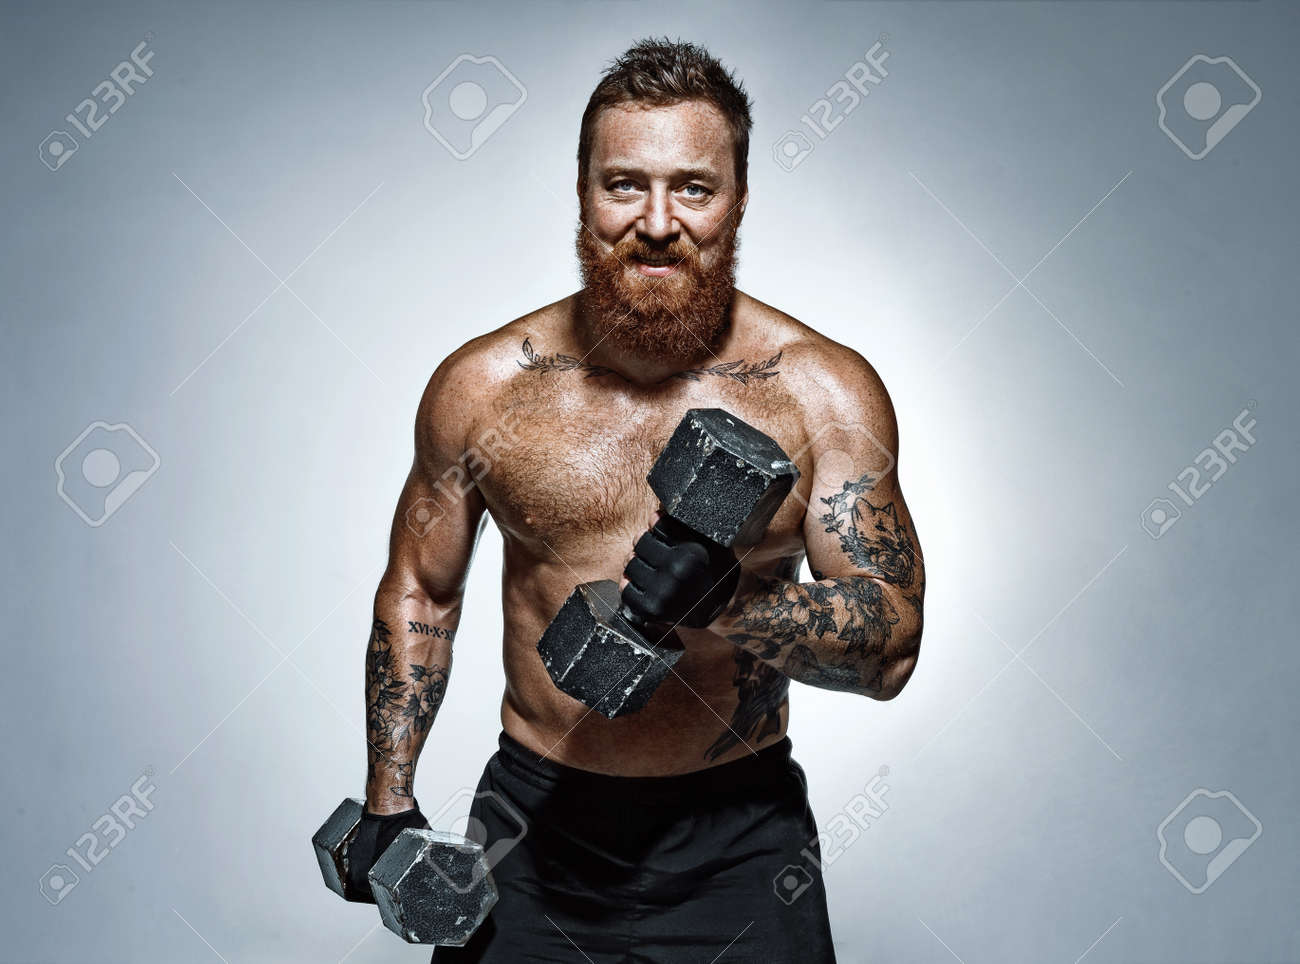 Strong man doing exercises with dumbbell. Photo of man with torso on grey background. Strength and motivation - 147130491